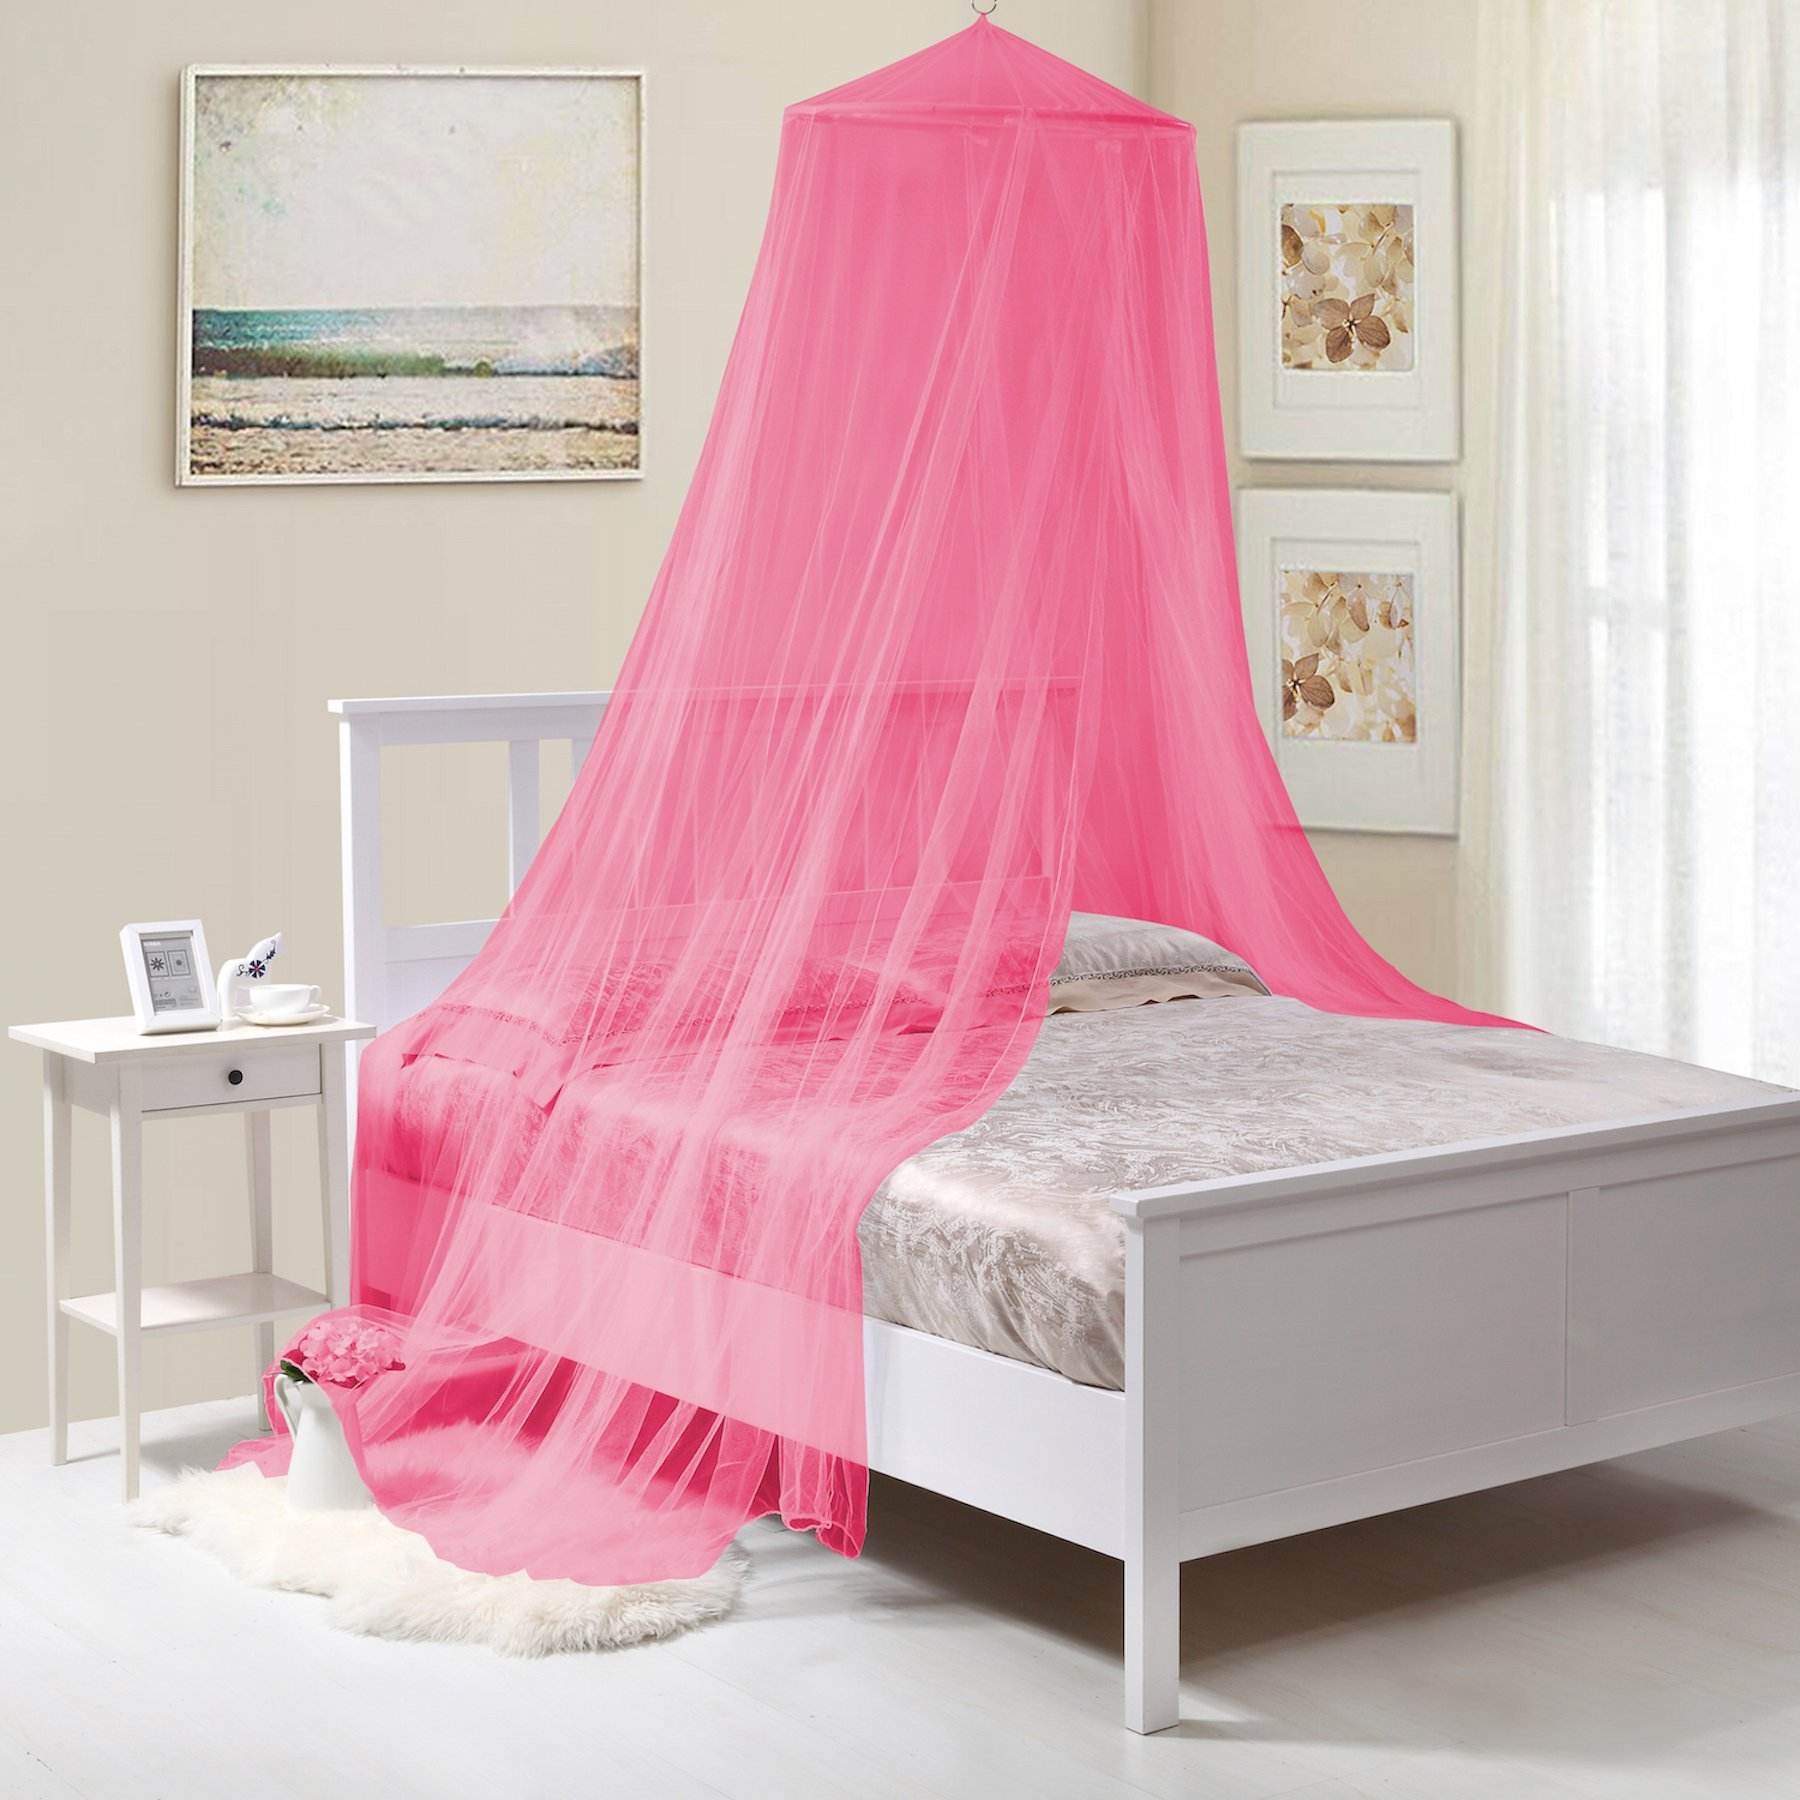 Fantasy Kids Kids Collapsible Wire Hoop Bed Canopy, One Size, Hot Pink